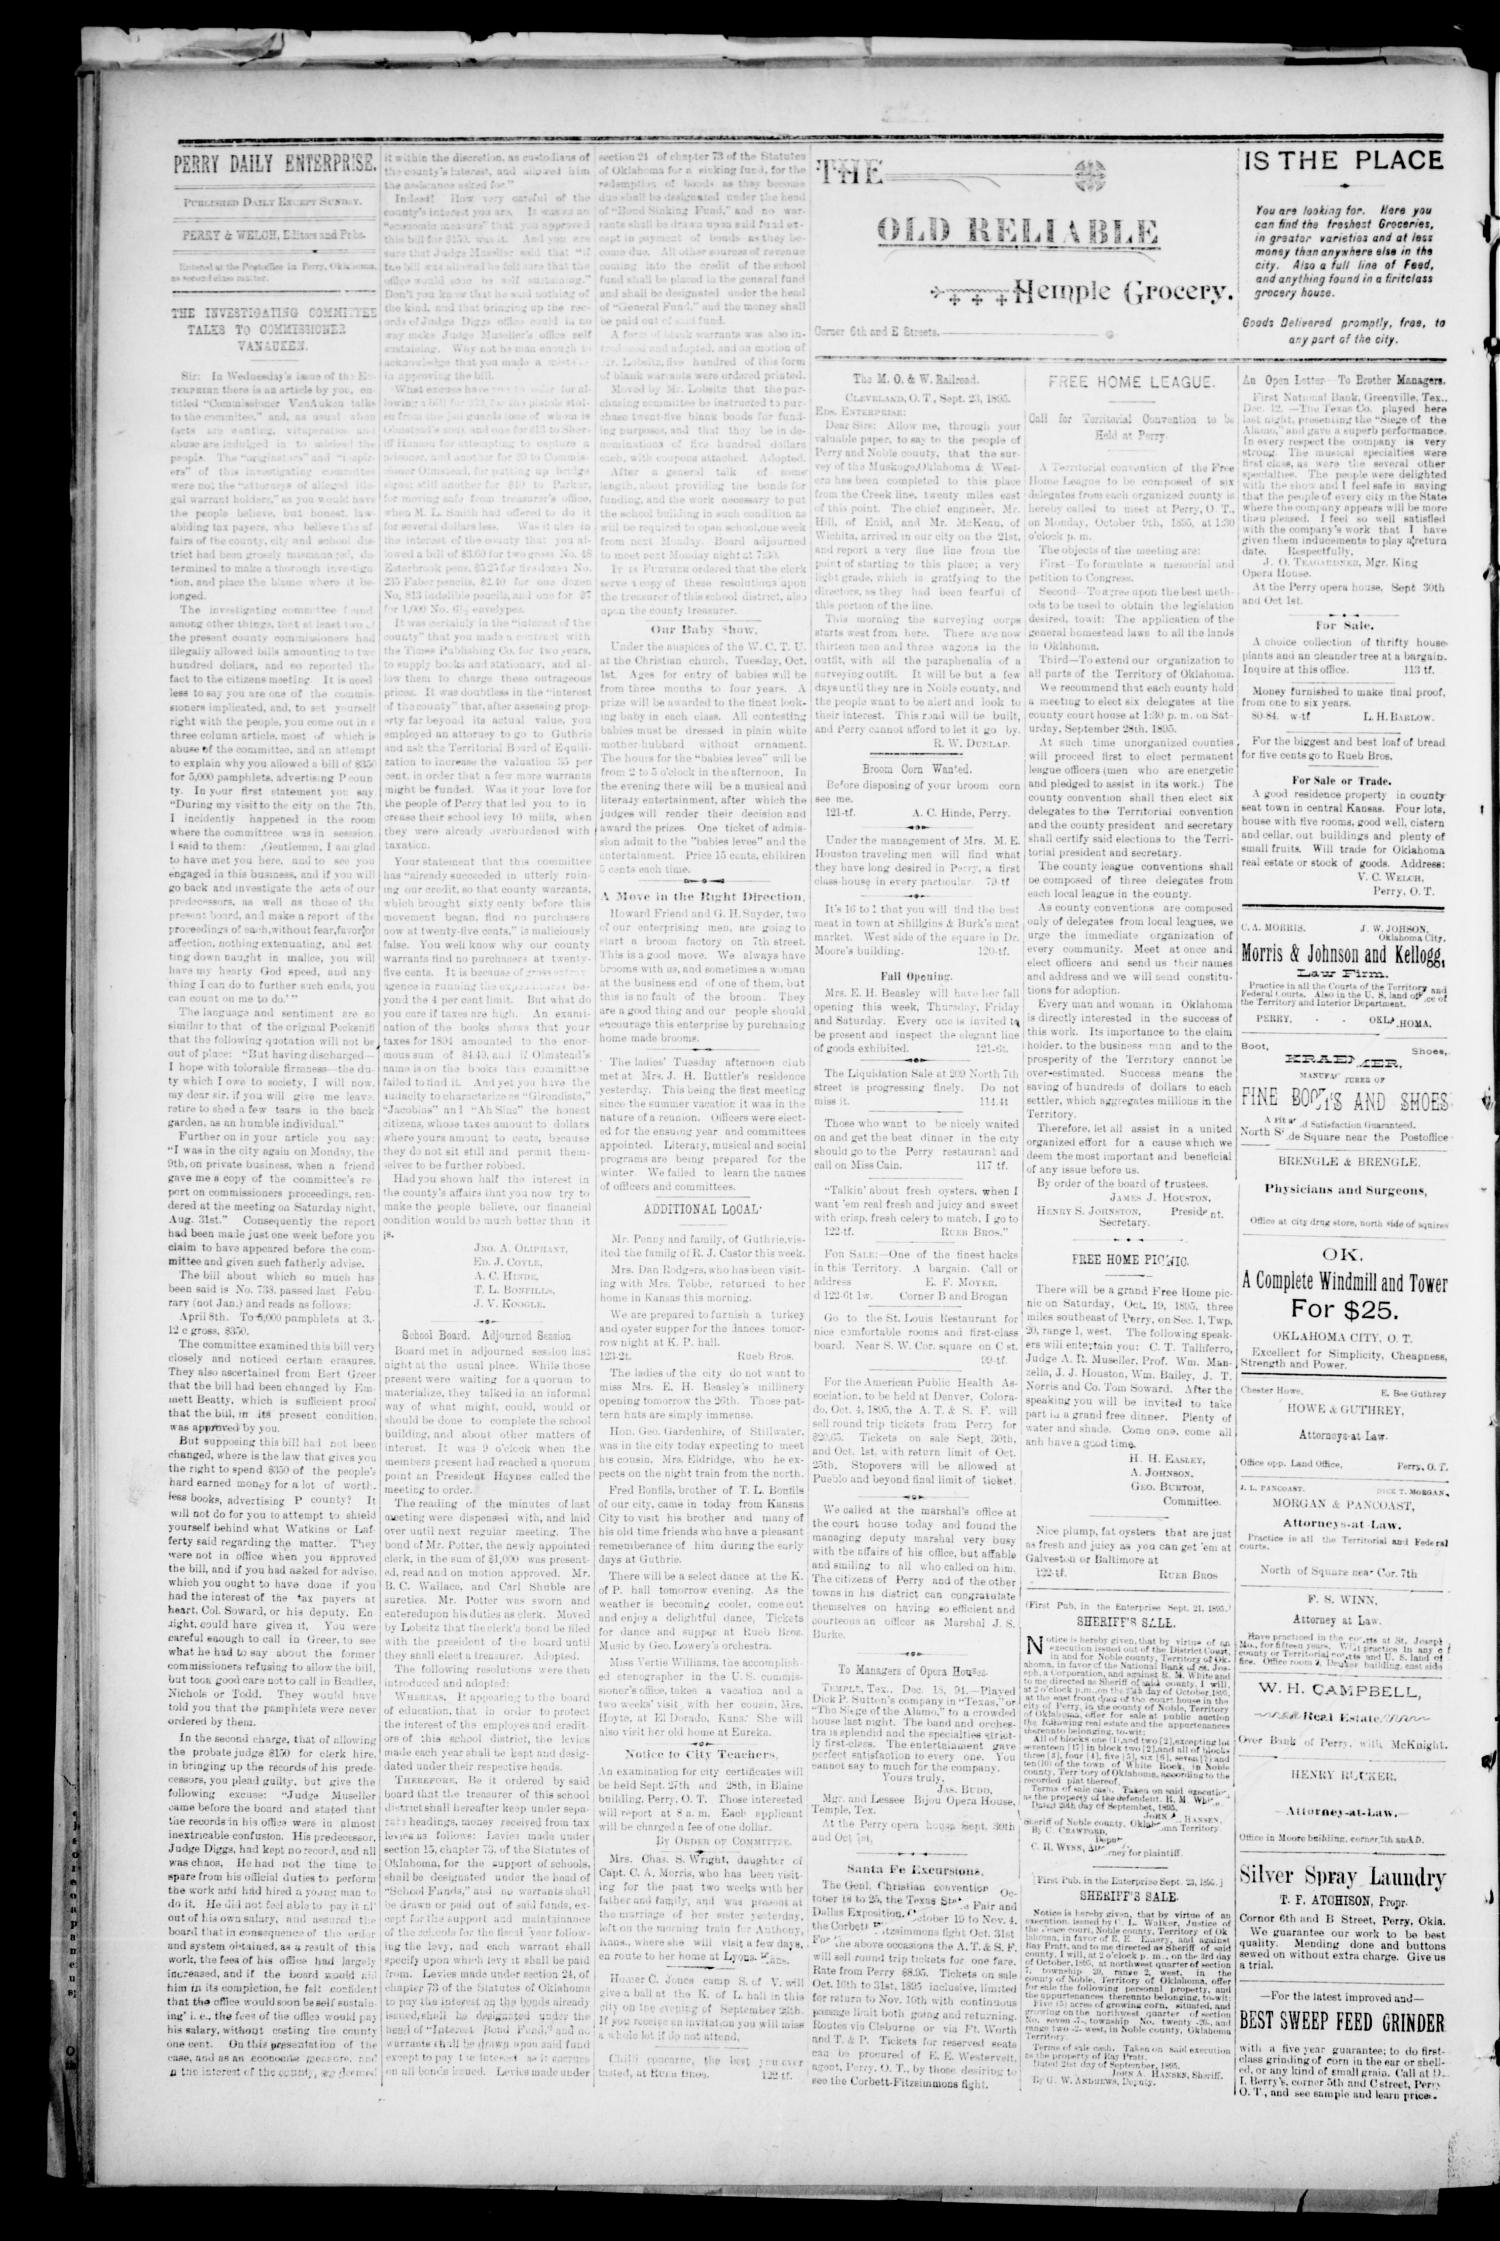 Perry Daily Enterprise. (Perry, Okla.), Vol. 1, No. 123, Ed. 1 Wednesday, September 25, 1895                                                                                                      [Sequence #]: 4 of 4